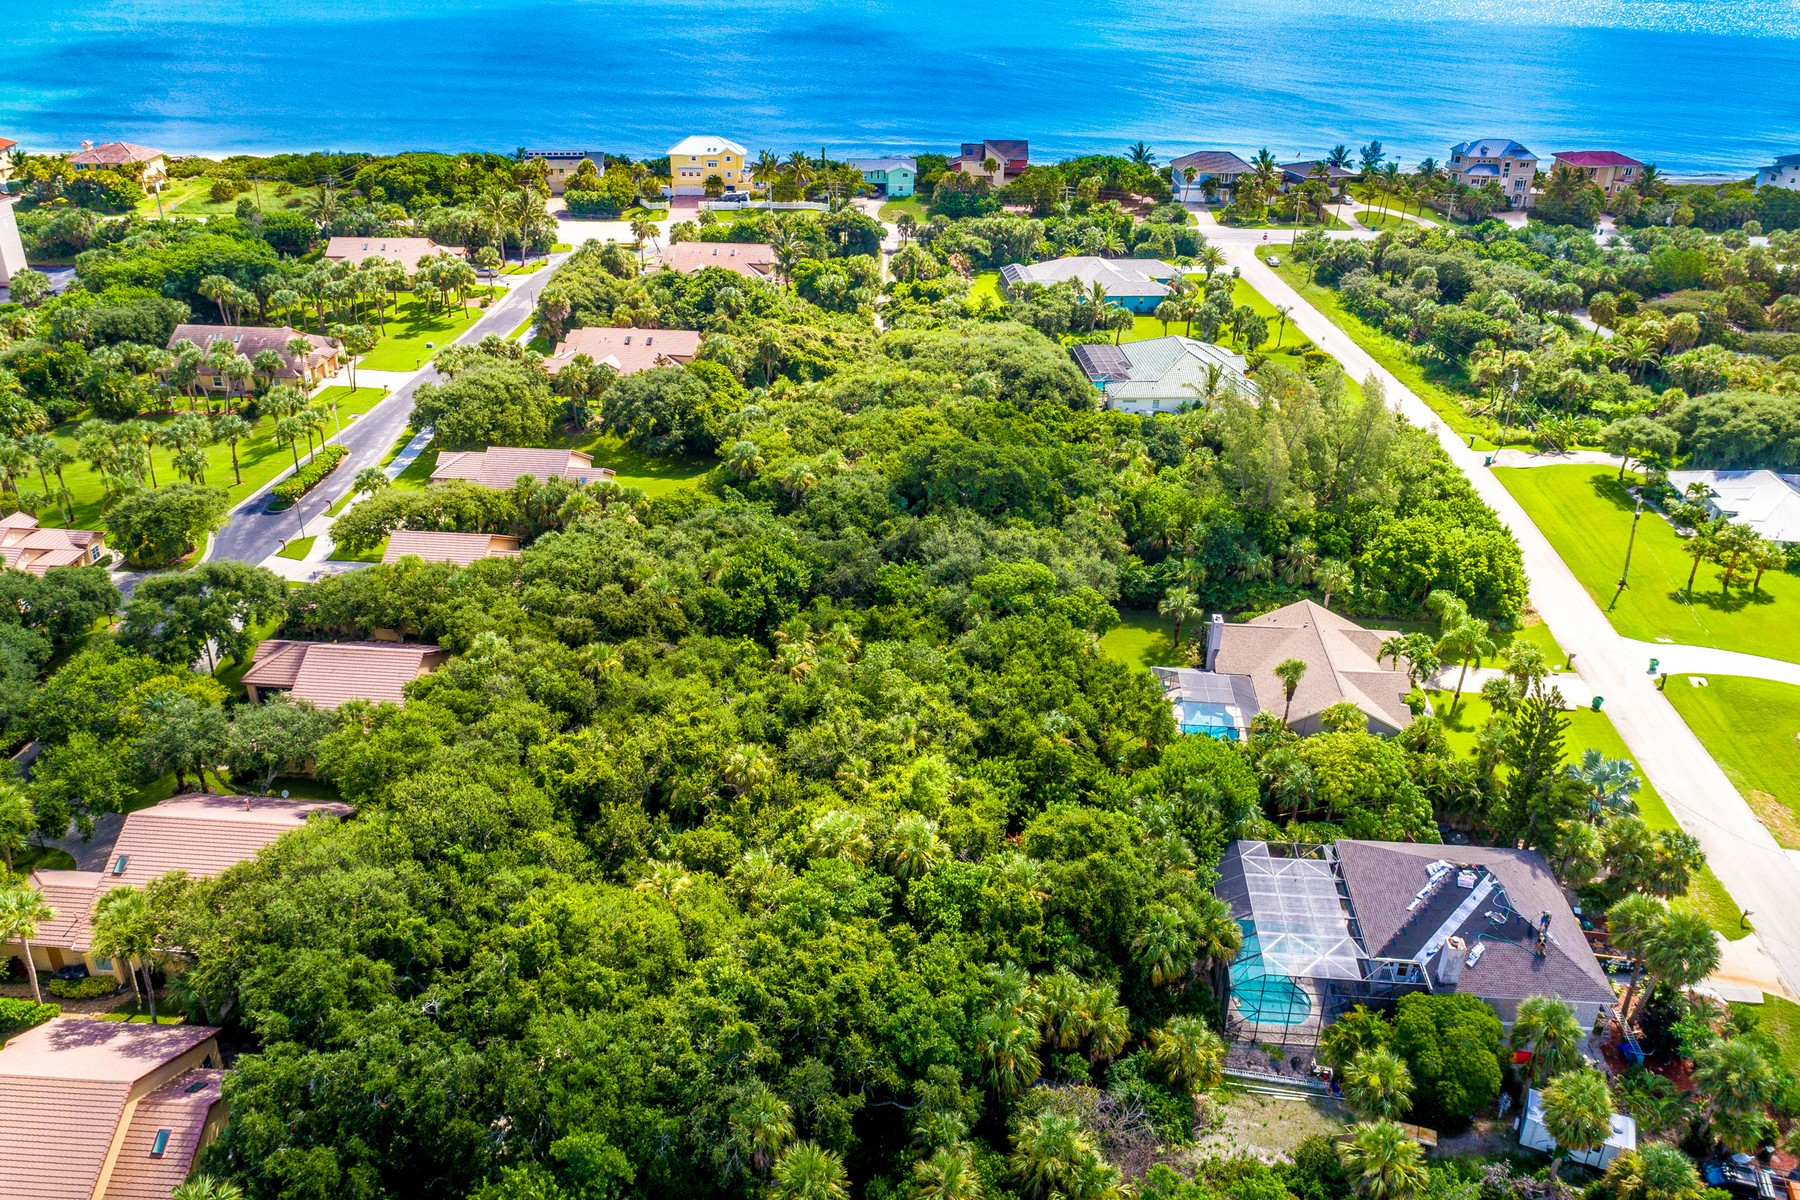 Land for Sale at 121 River Path Lane 121 River Path Lane Melbourne Beach, Florida 32951 United States